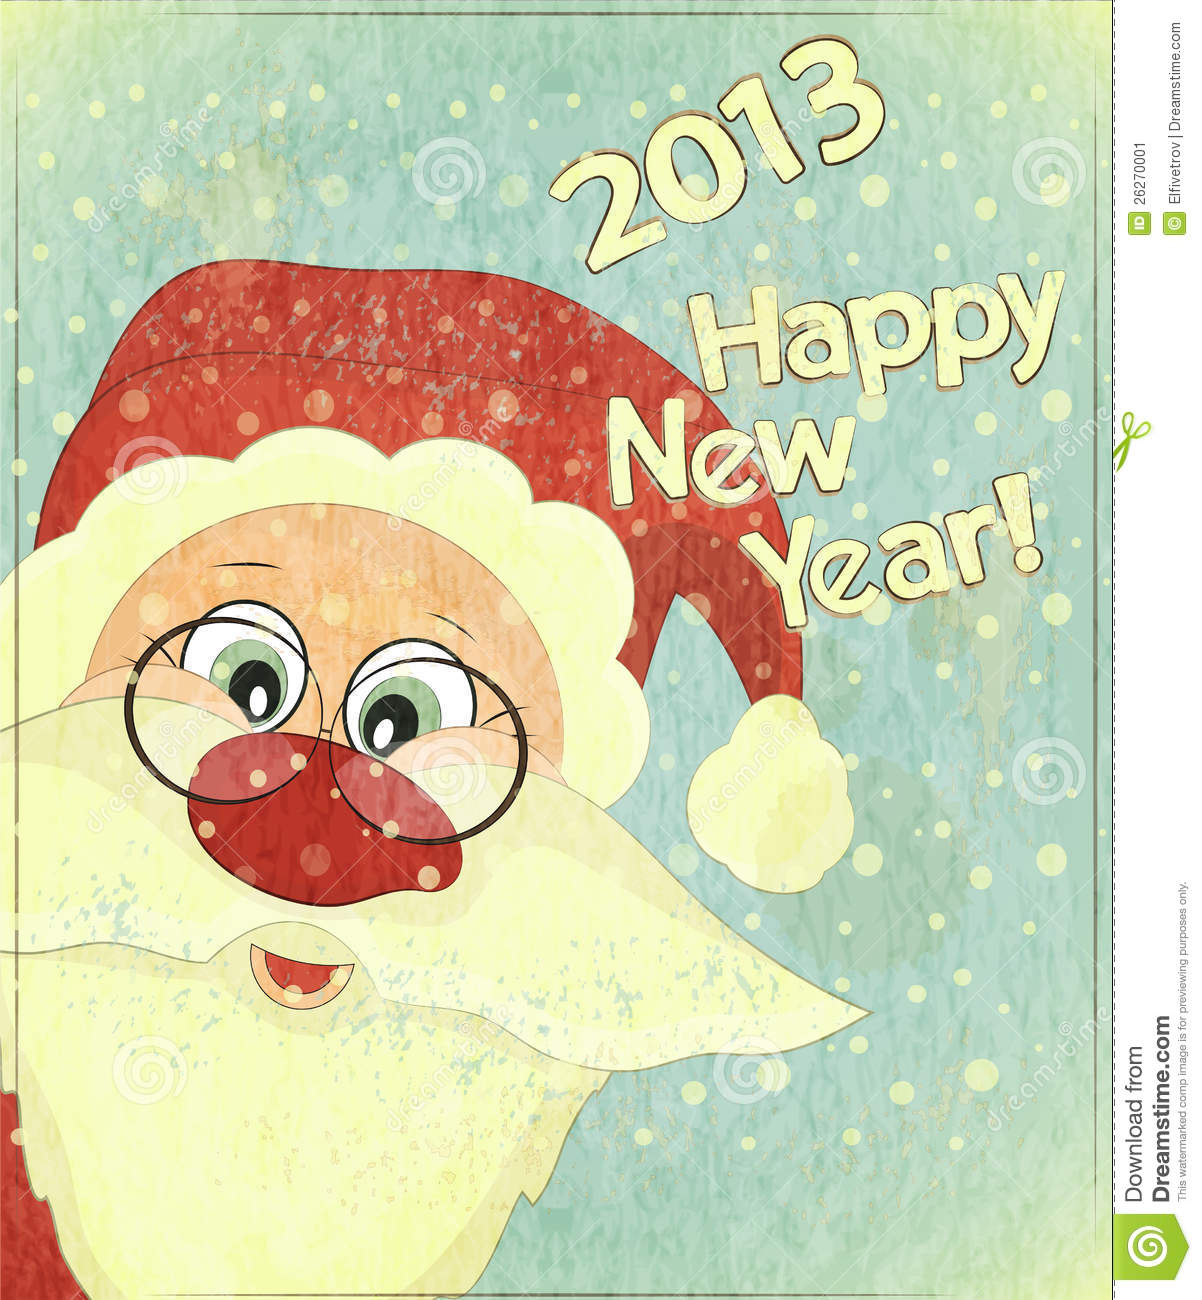 ... with Santa Claus - New Year postcard in Retro style - illustration